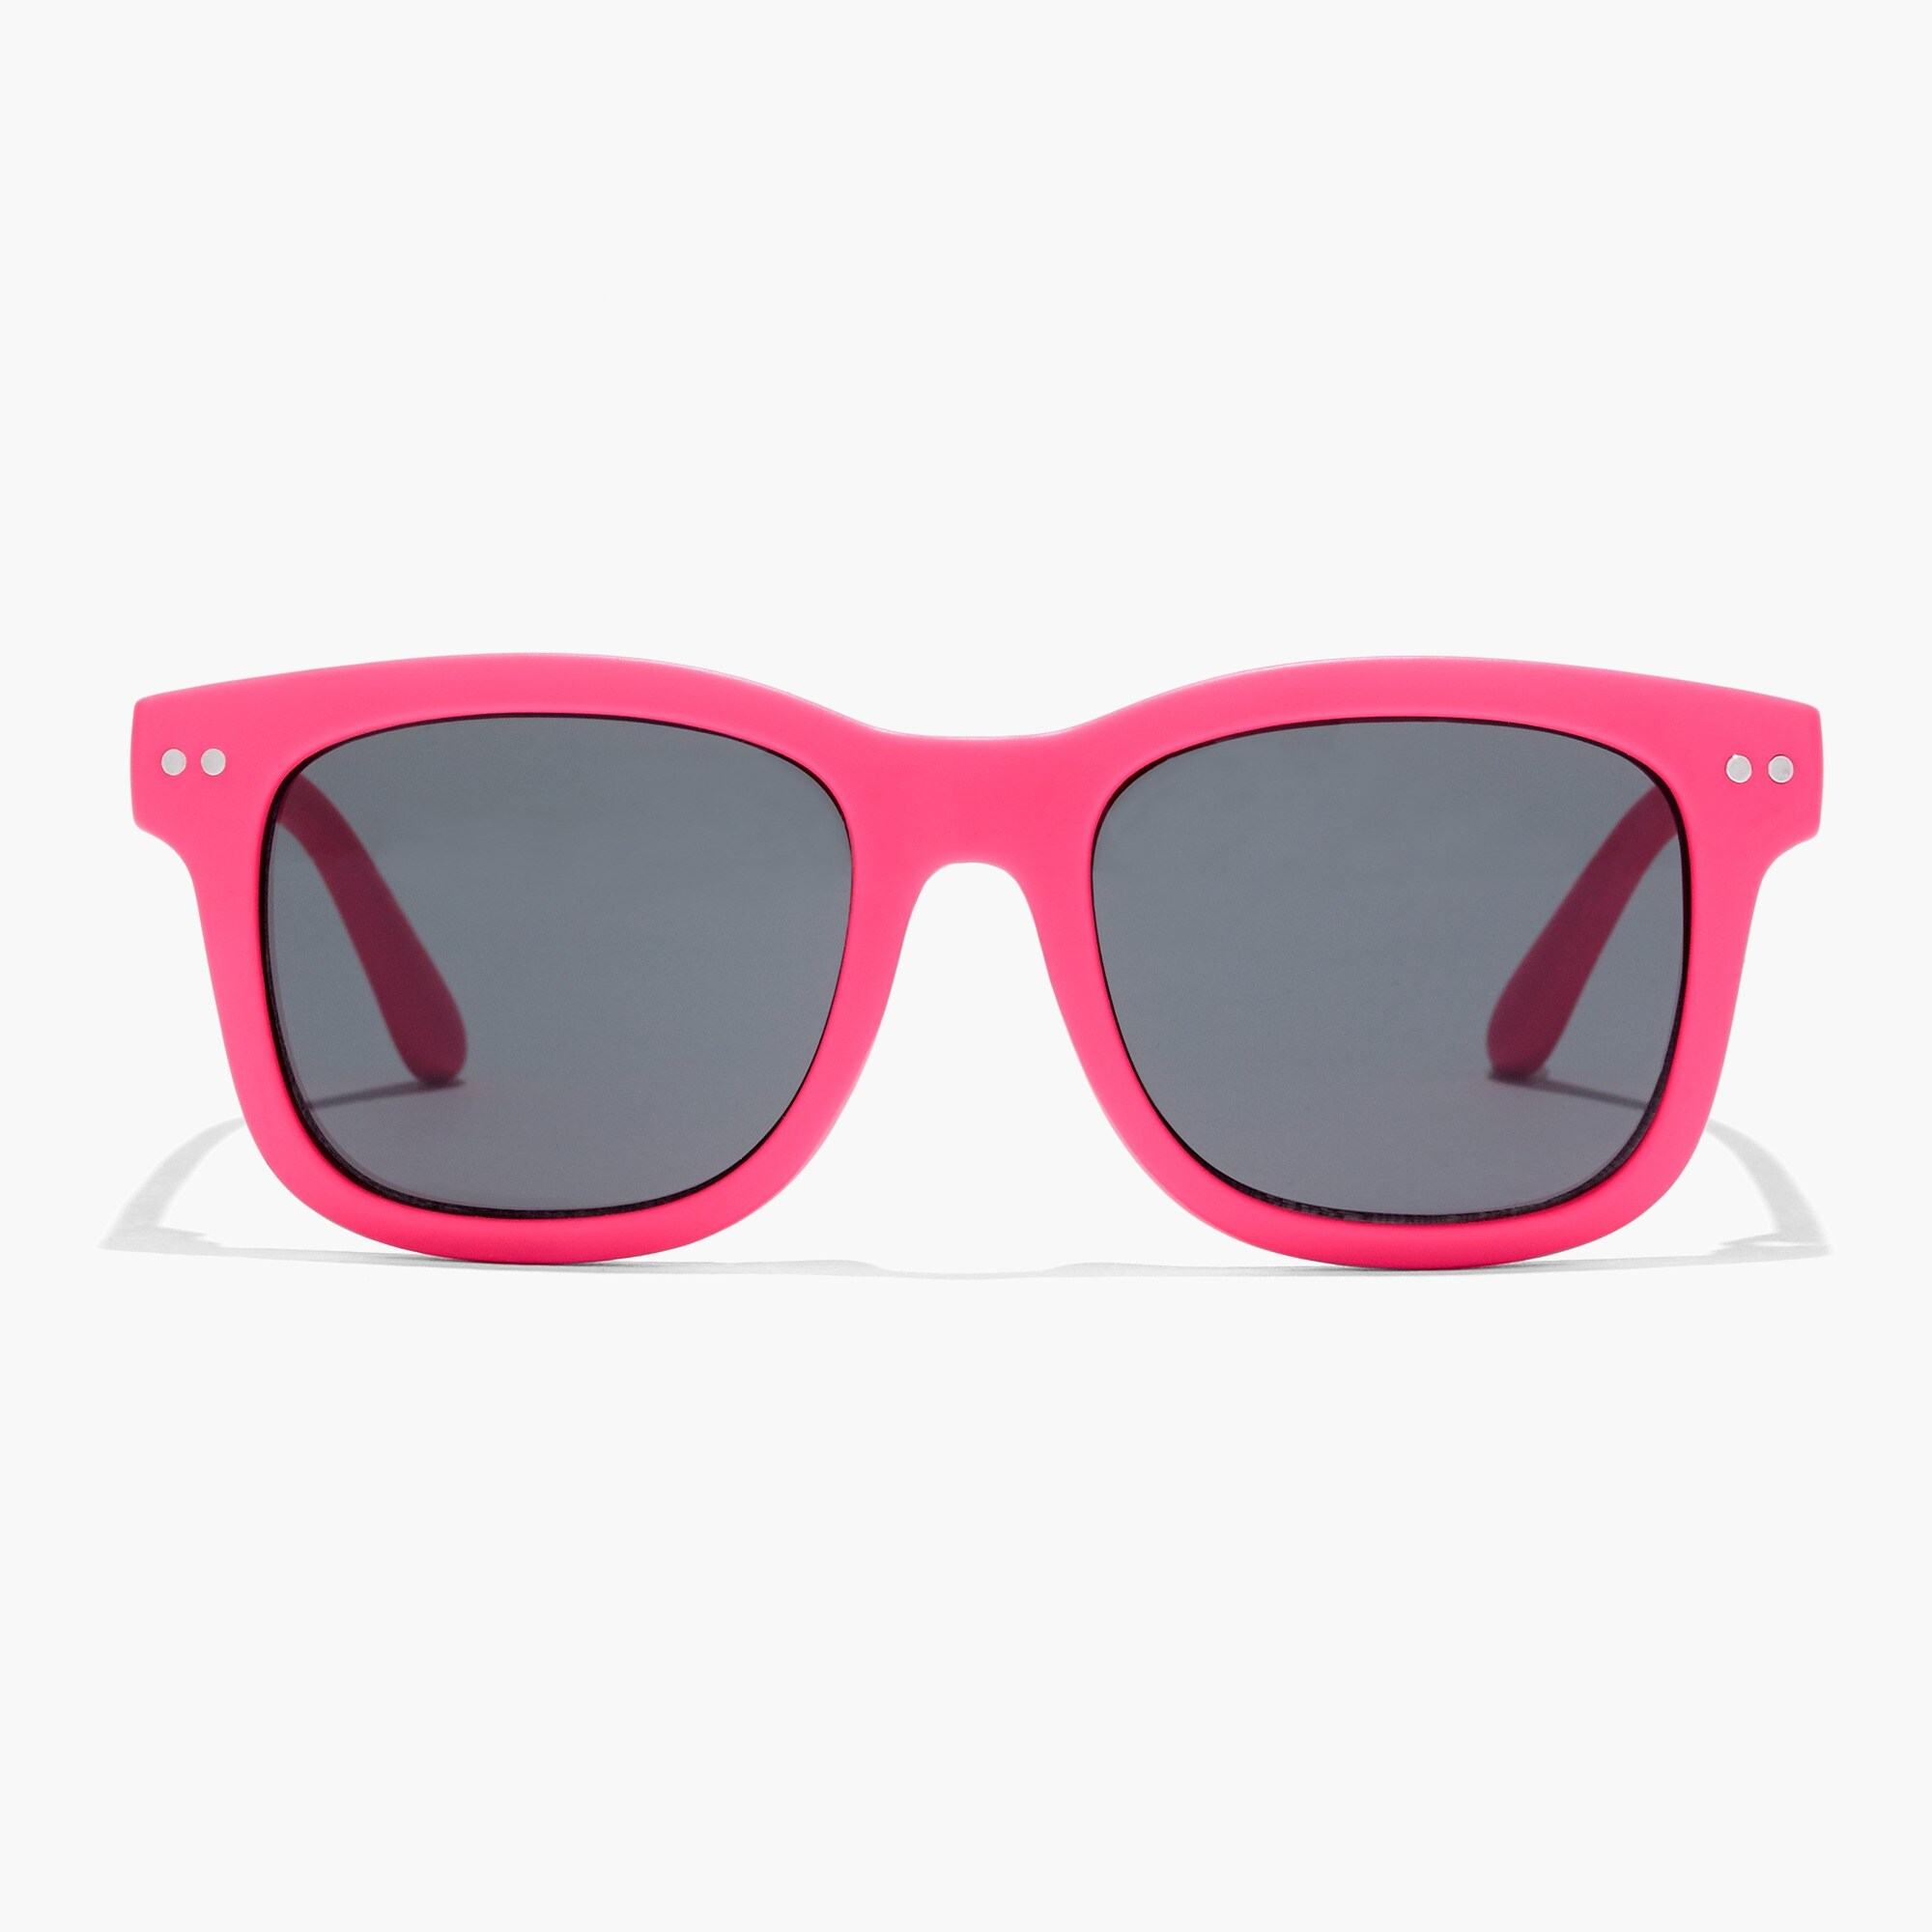 kids' sunnies : girl sunglasses